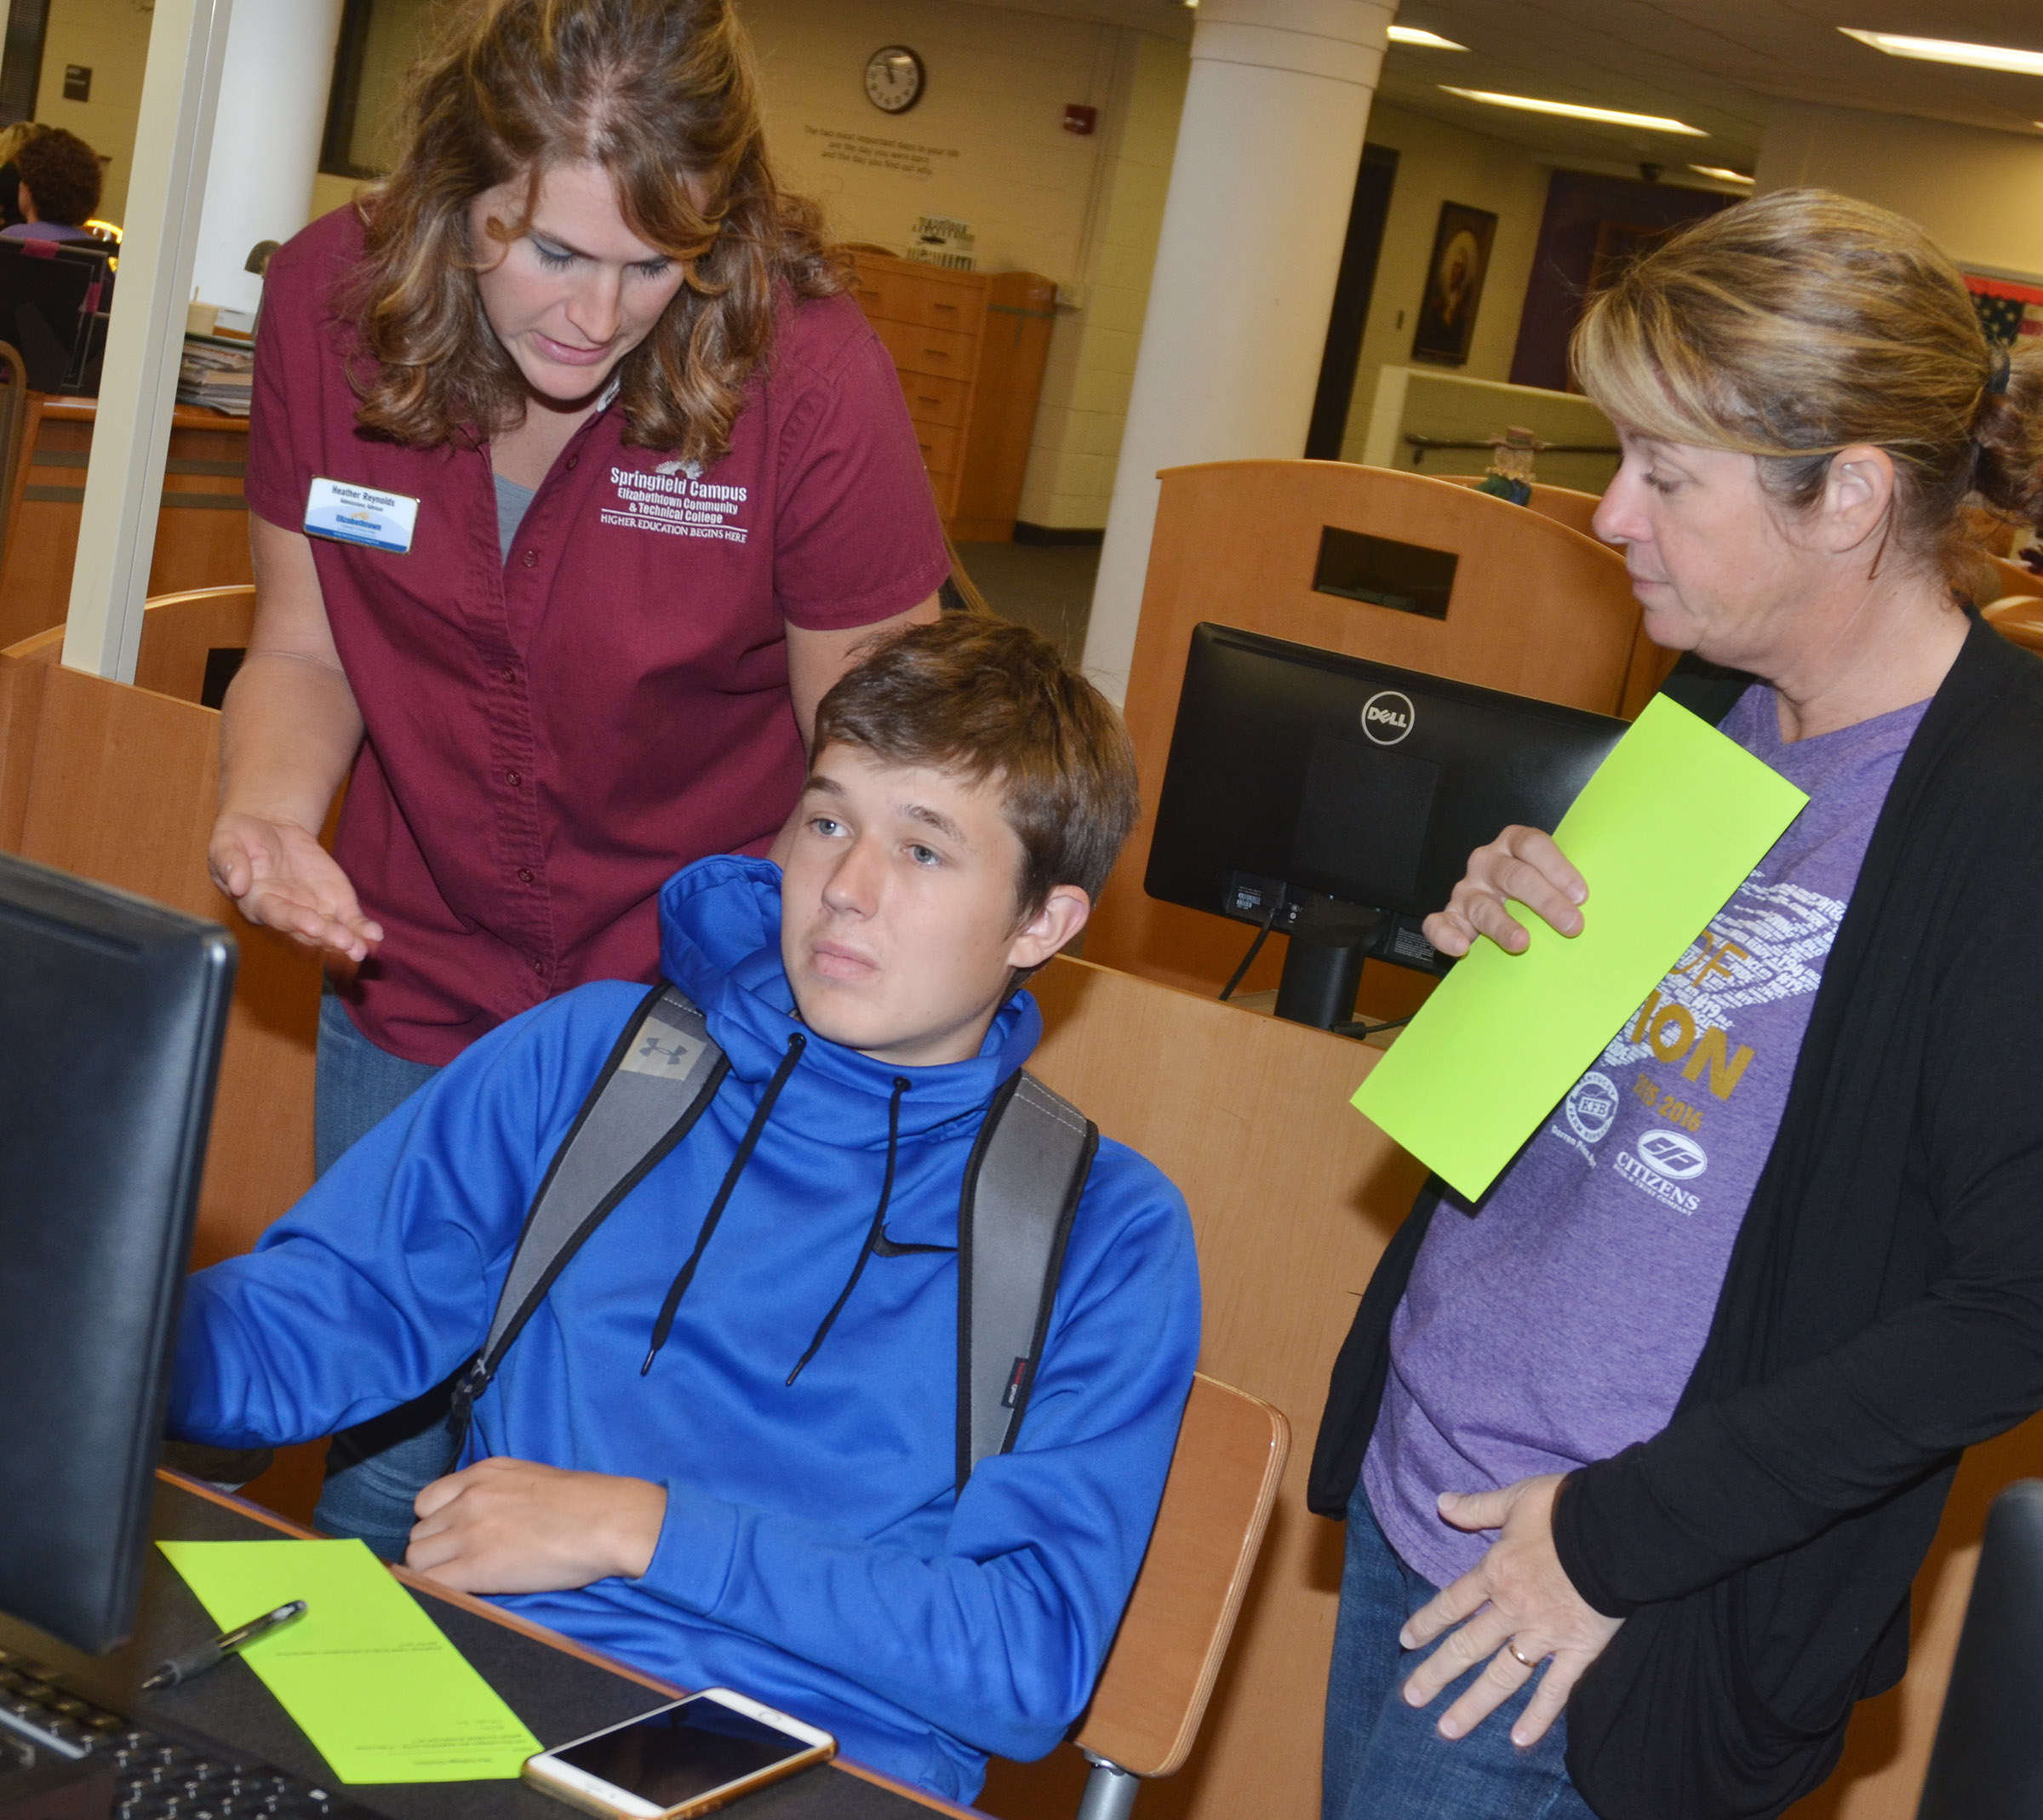 Heather Reynolds, admissions advisor at Elizabethtown Community & Technical College, at left, and CHS College and Career Readiness Counselor Dee Doss help senior Justin Humphress with a question about applying to attend college.